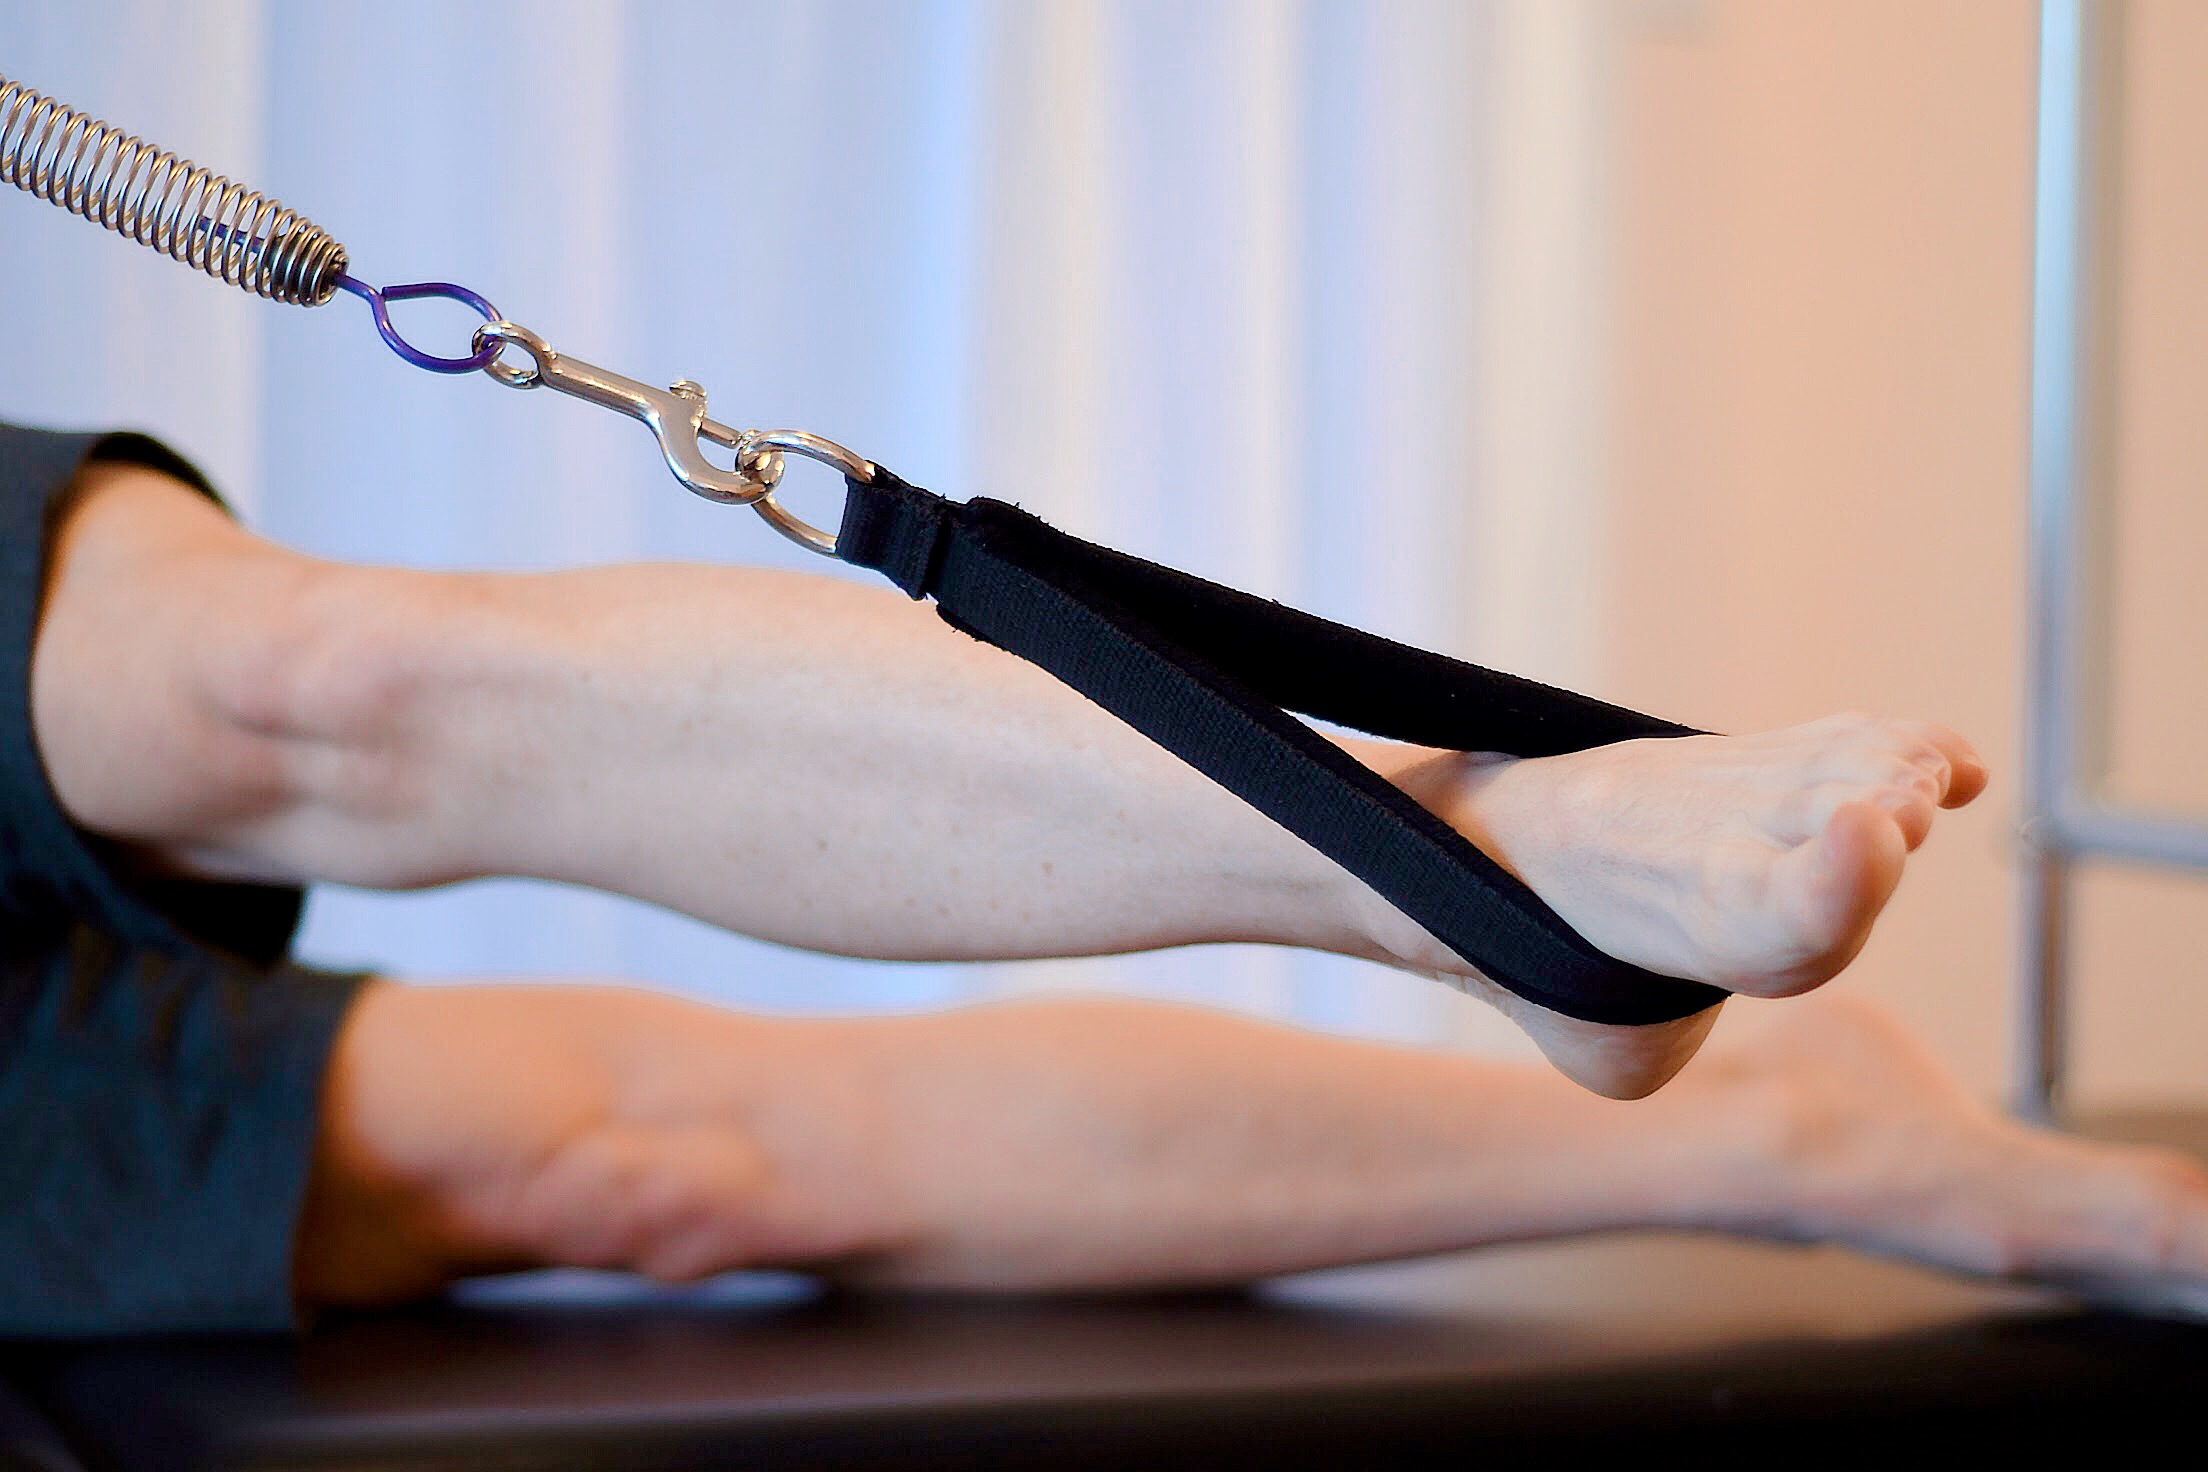 2. Pilatay-Pilates-Feet-In-Straps.JPG